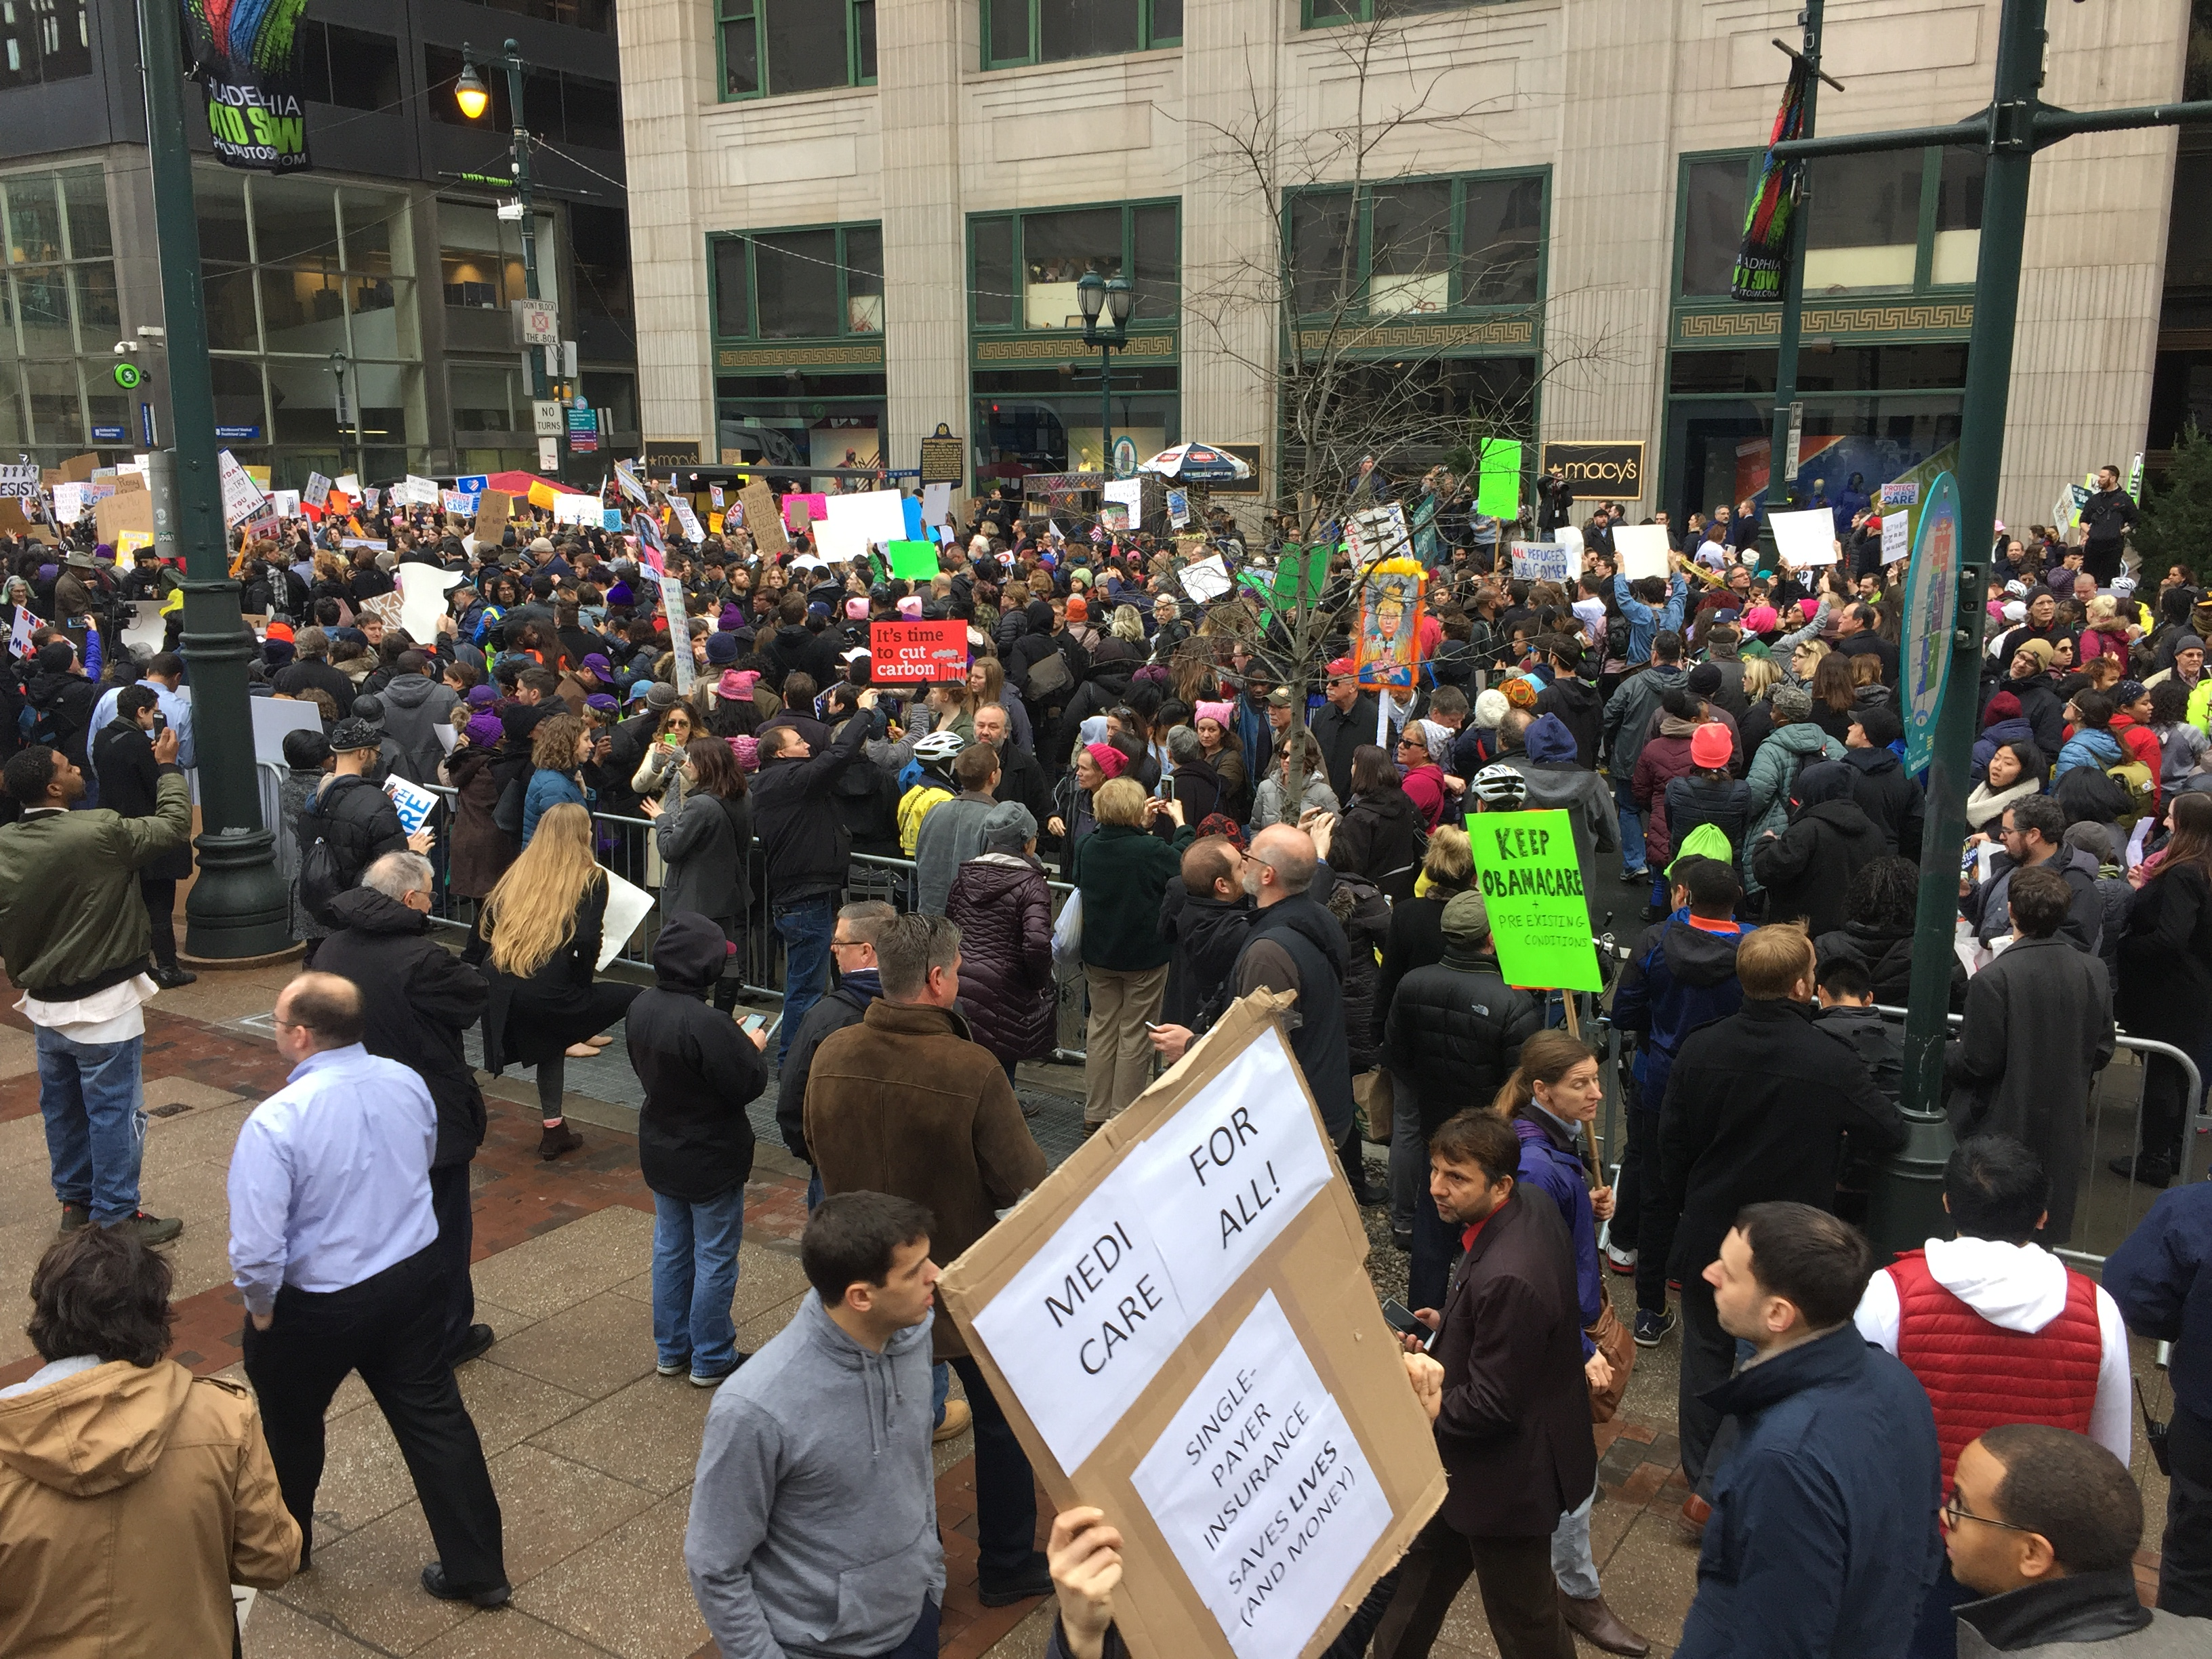 Thousands Protest Donald Trump at Republican Retreat in Philadelphia